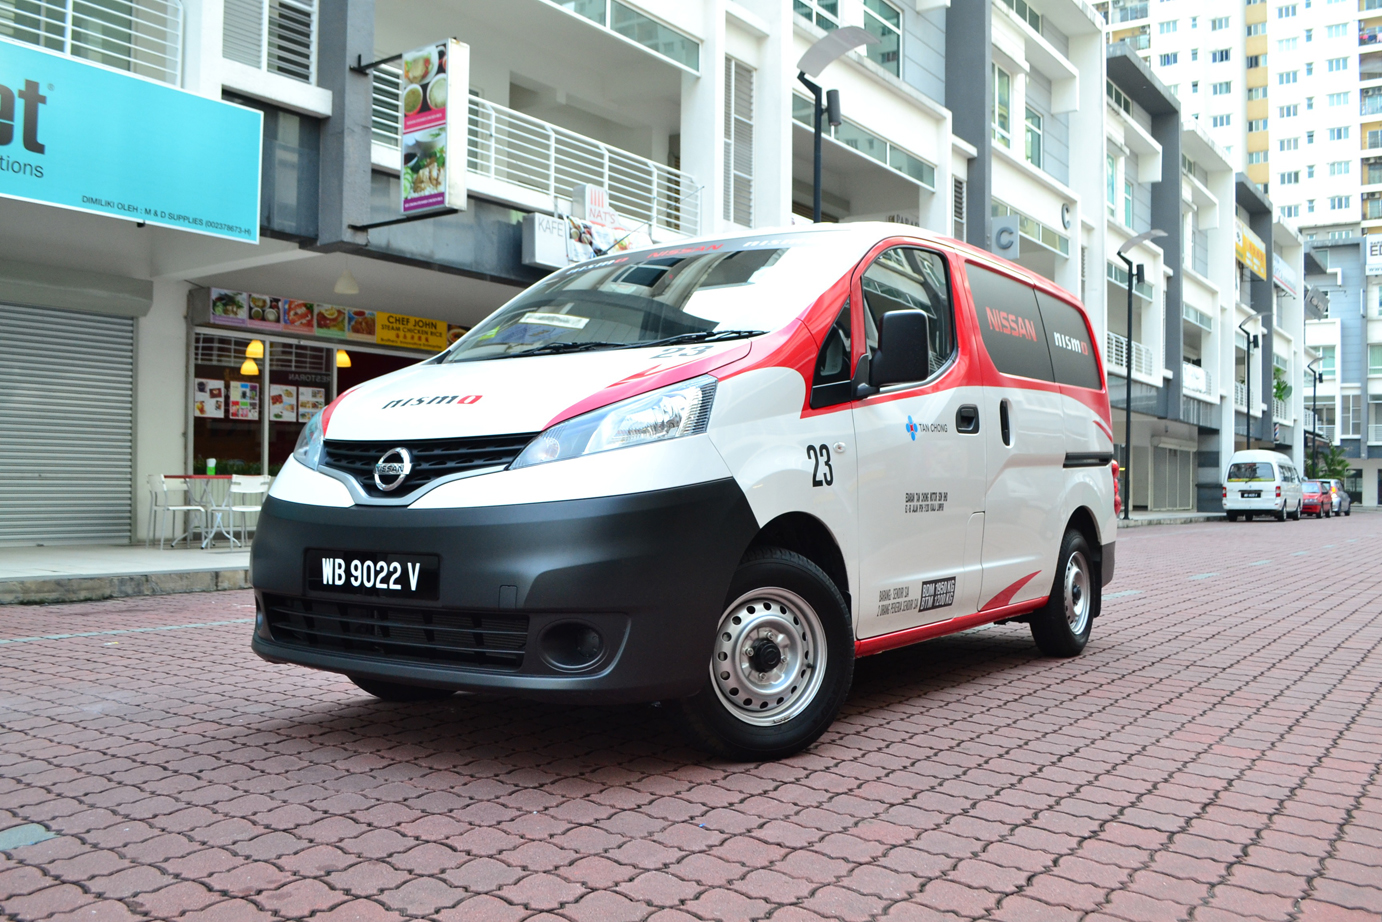 b1f14bfcf3 The Nissan NV200 - Limitless Potential - kensomuse